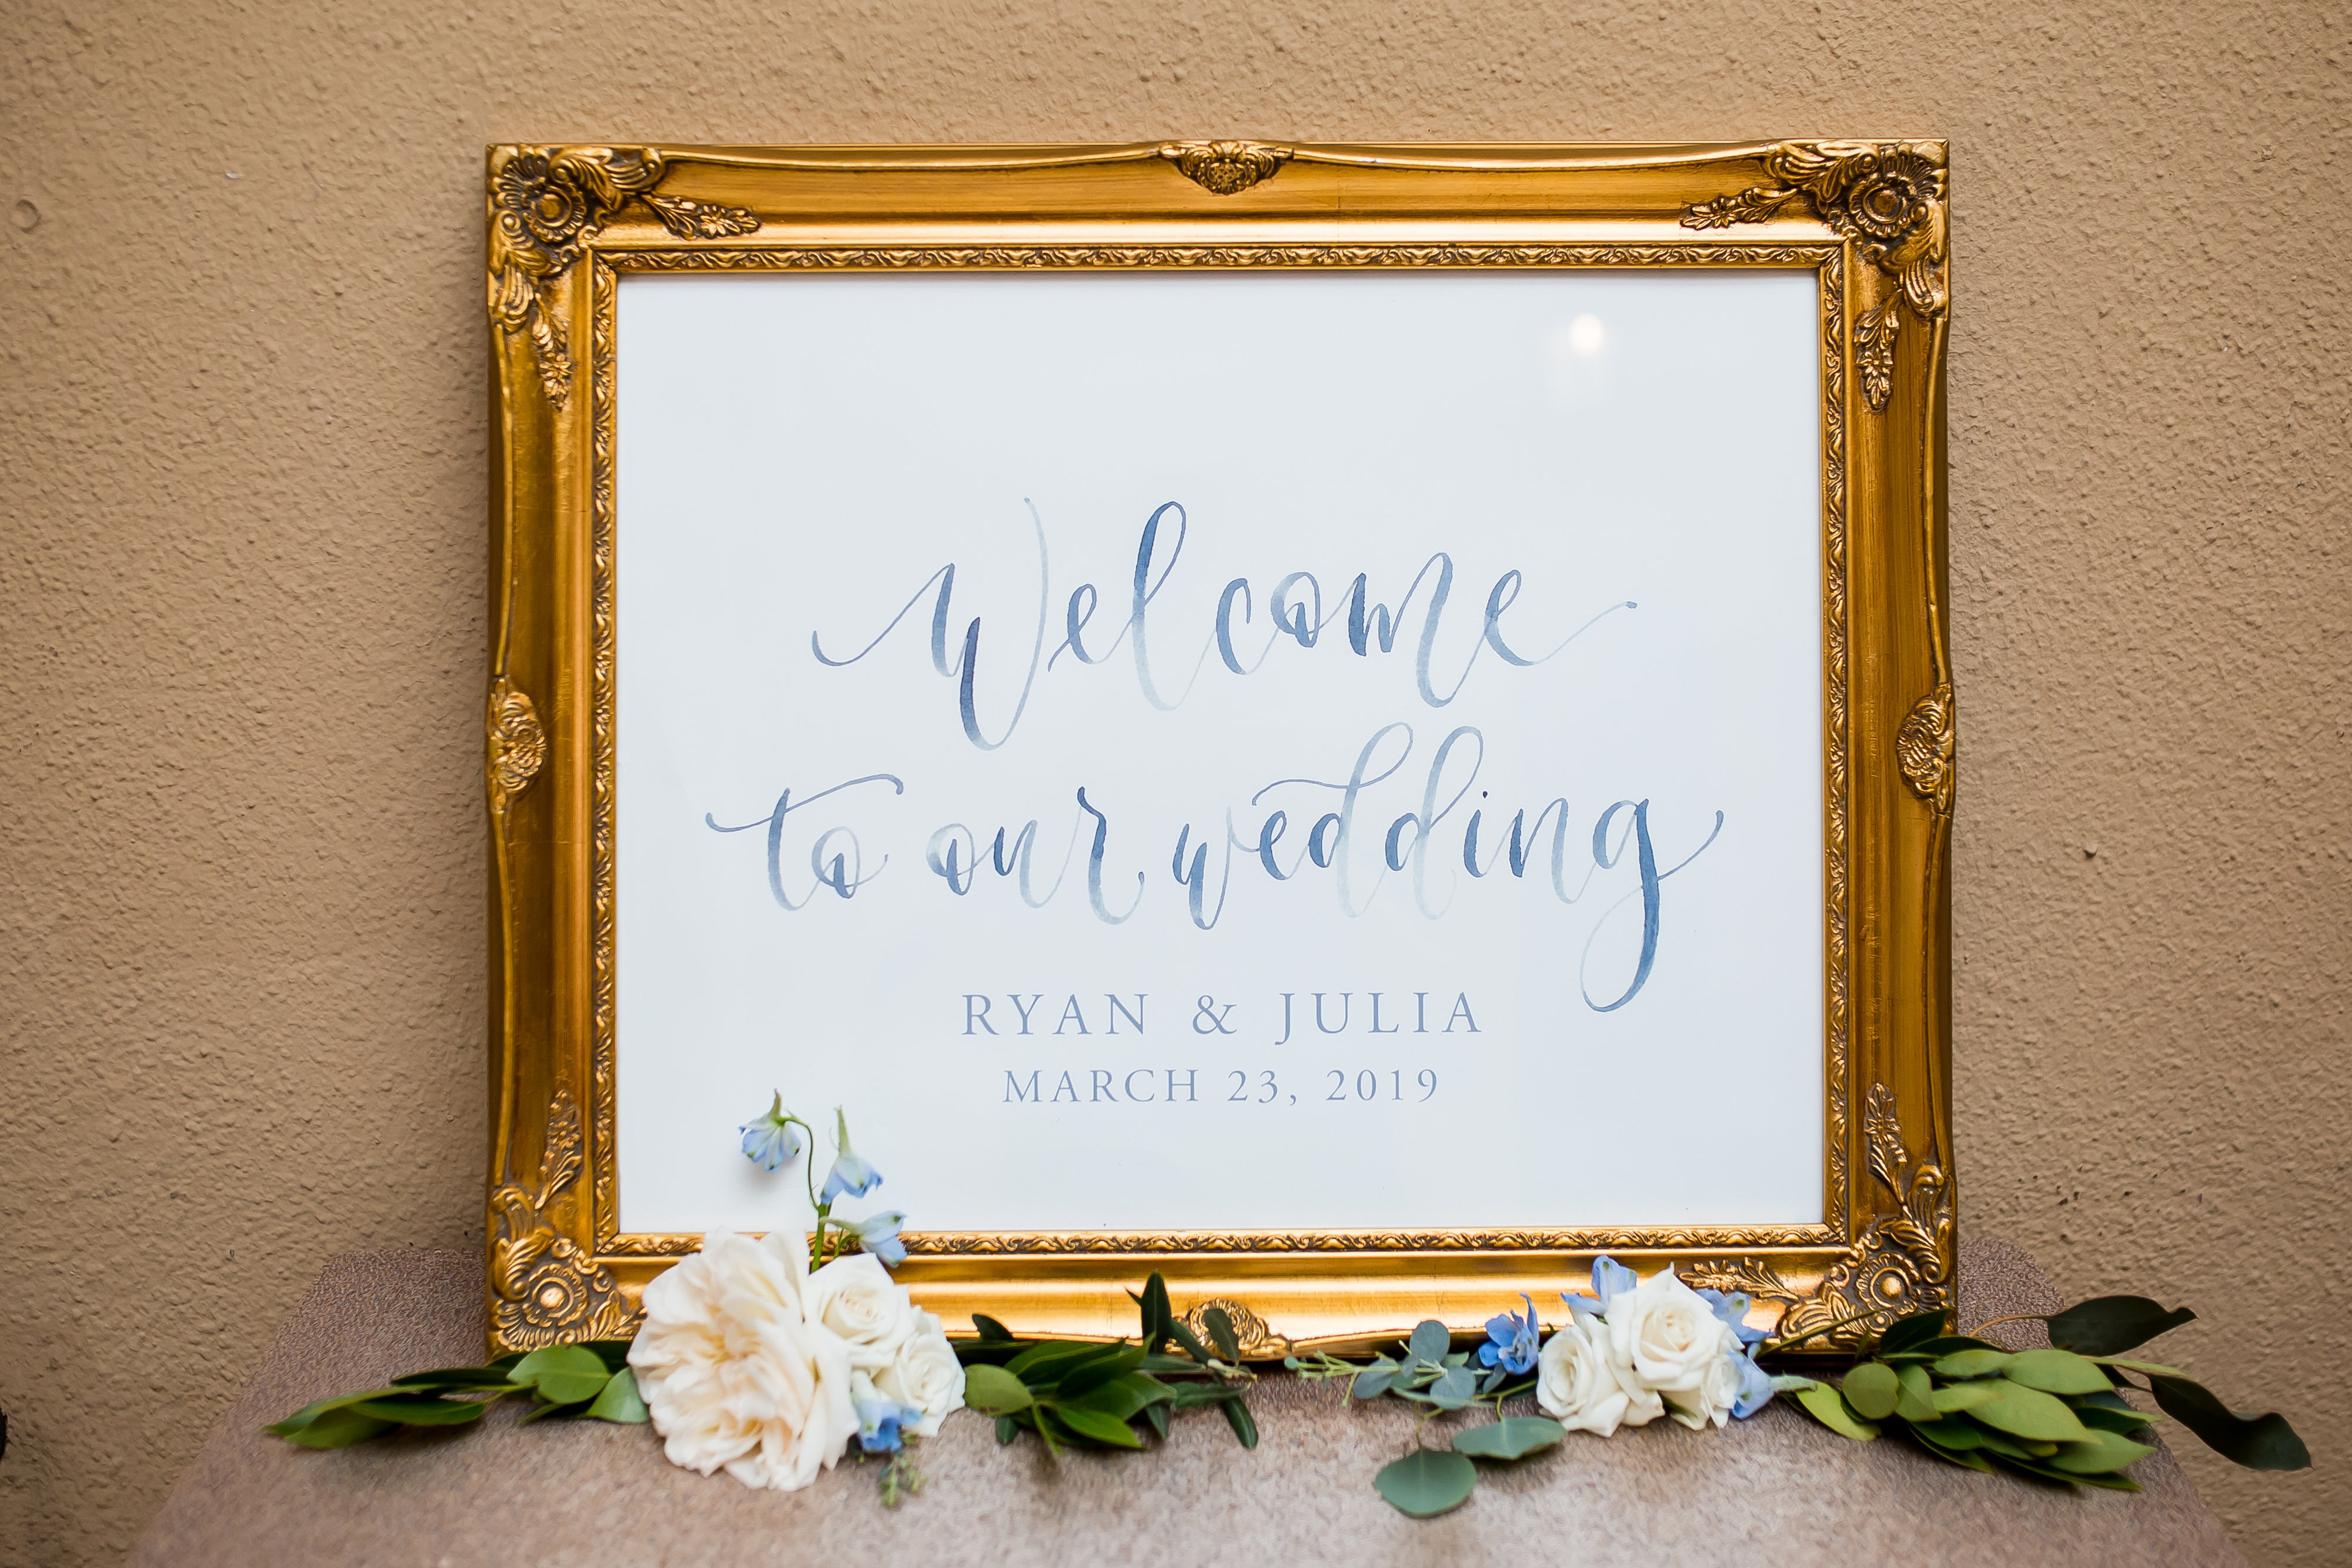 Sam-Allen-Creates-Watercolor-Wedding-Welcome-Sign-Framed-Poster-Michelle-Preau-Photography-1